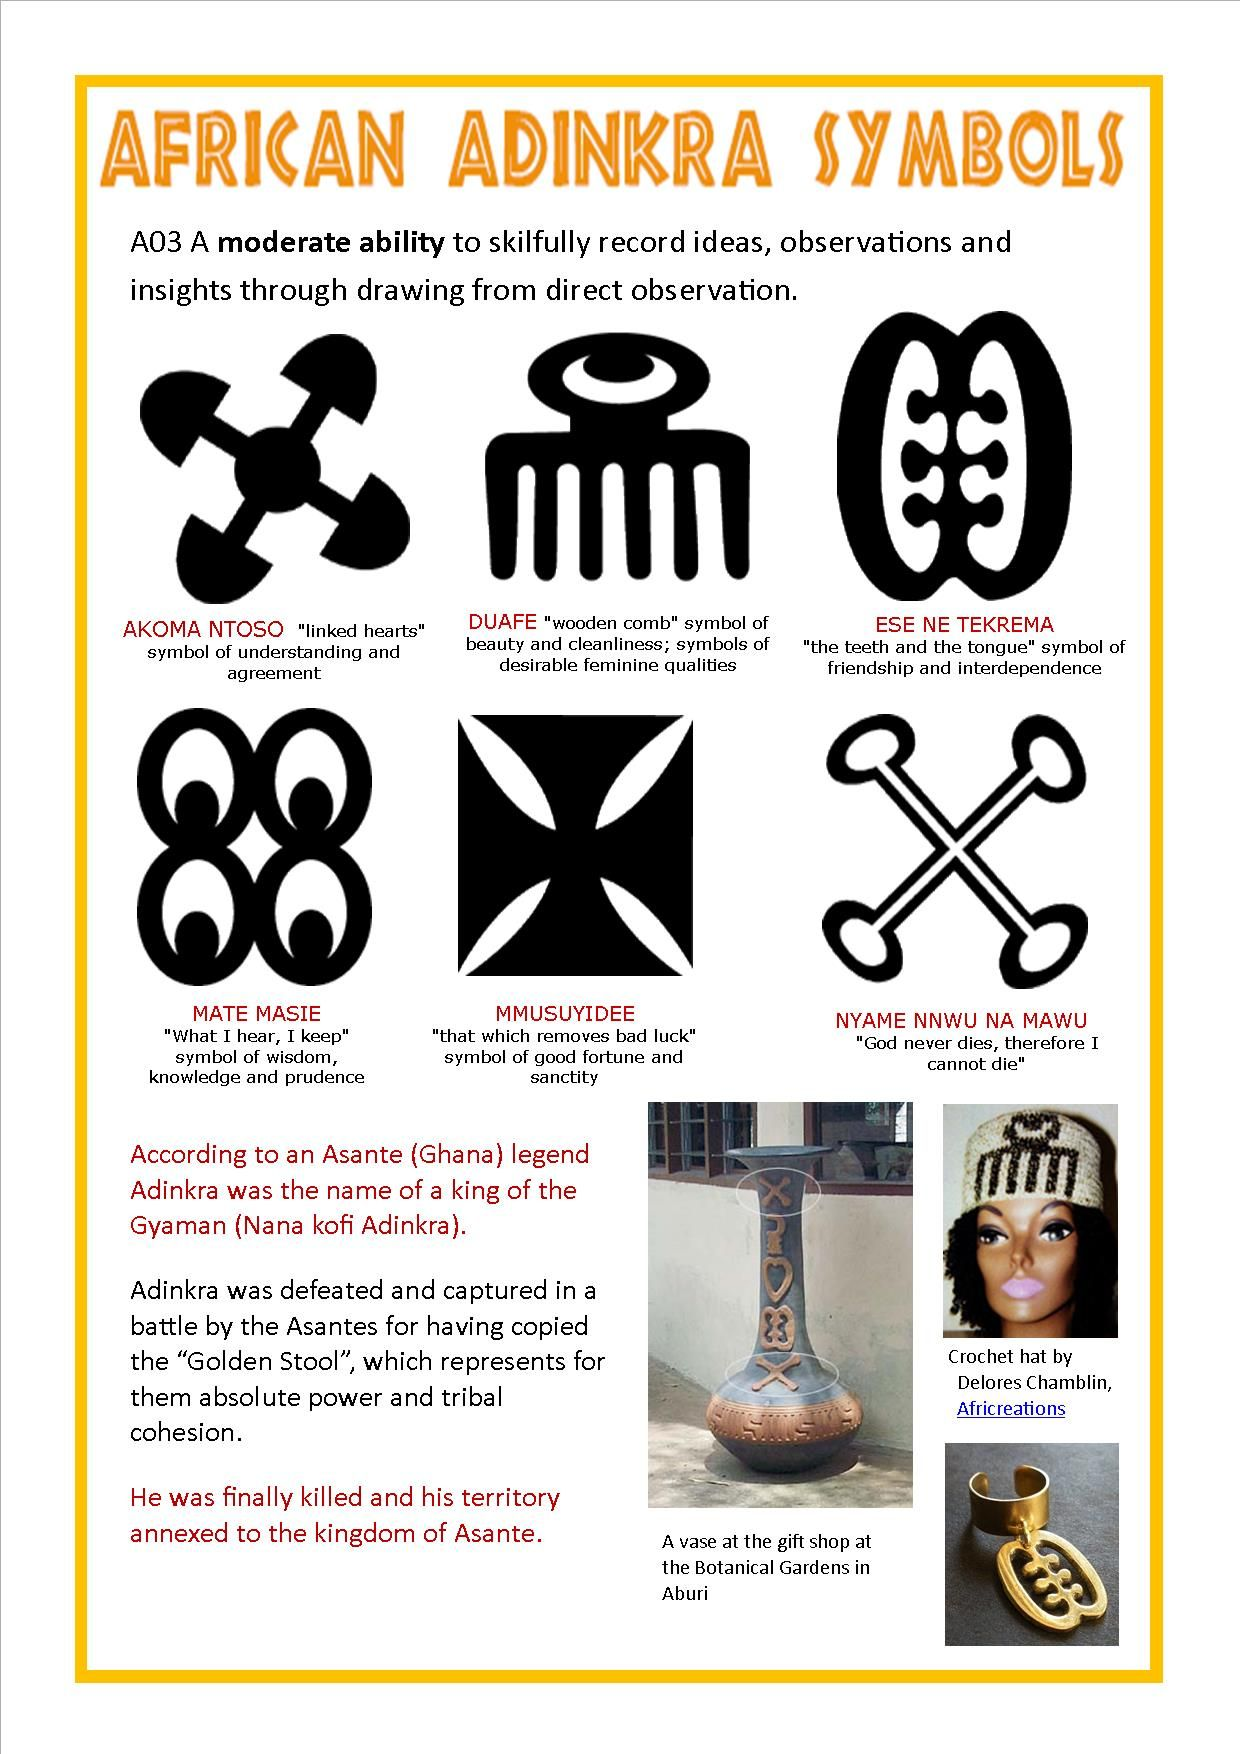 Adinkra Symbols And Their Meanings With Images